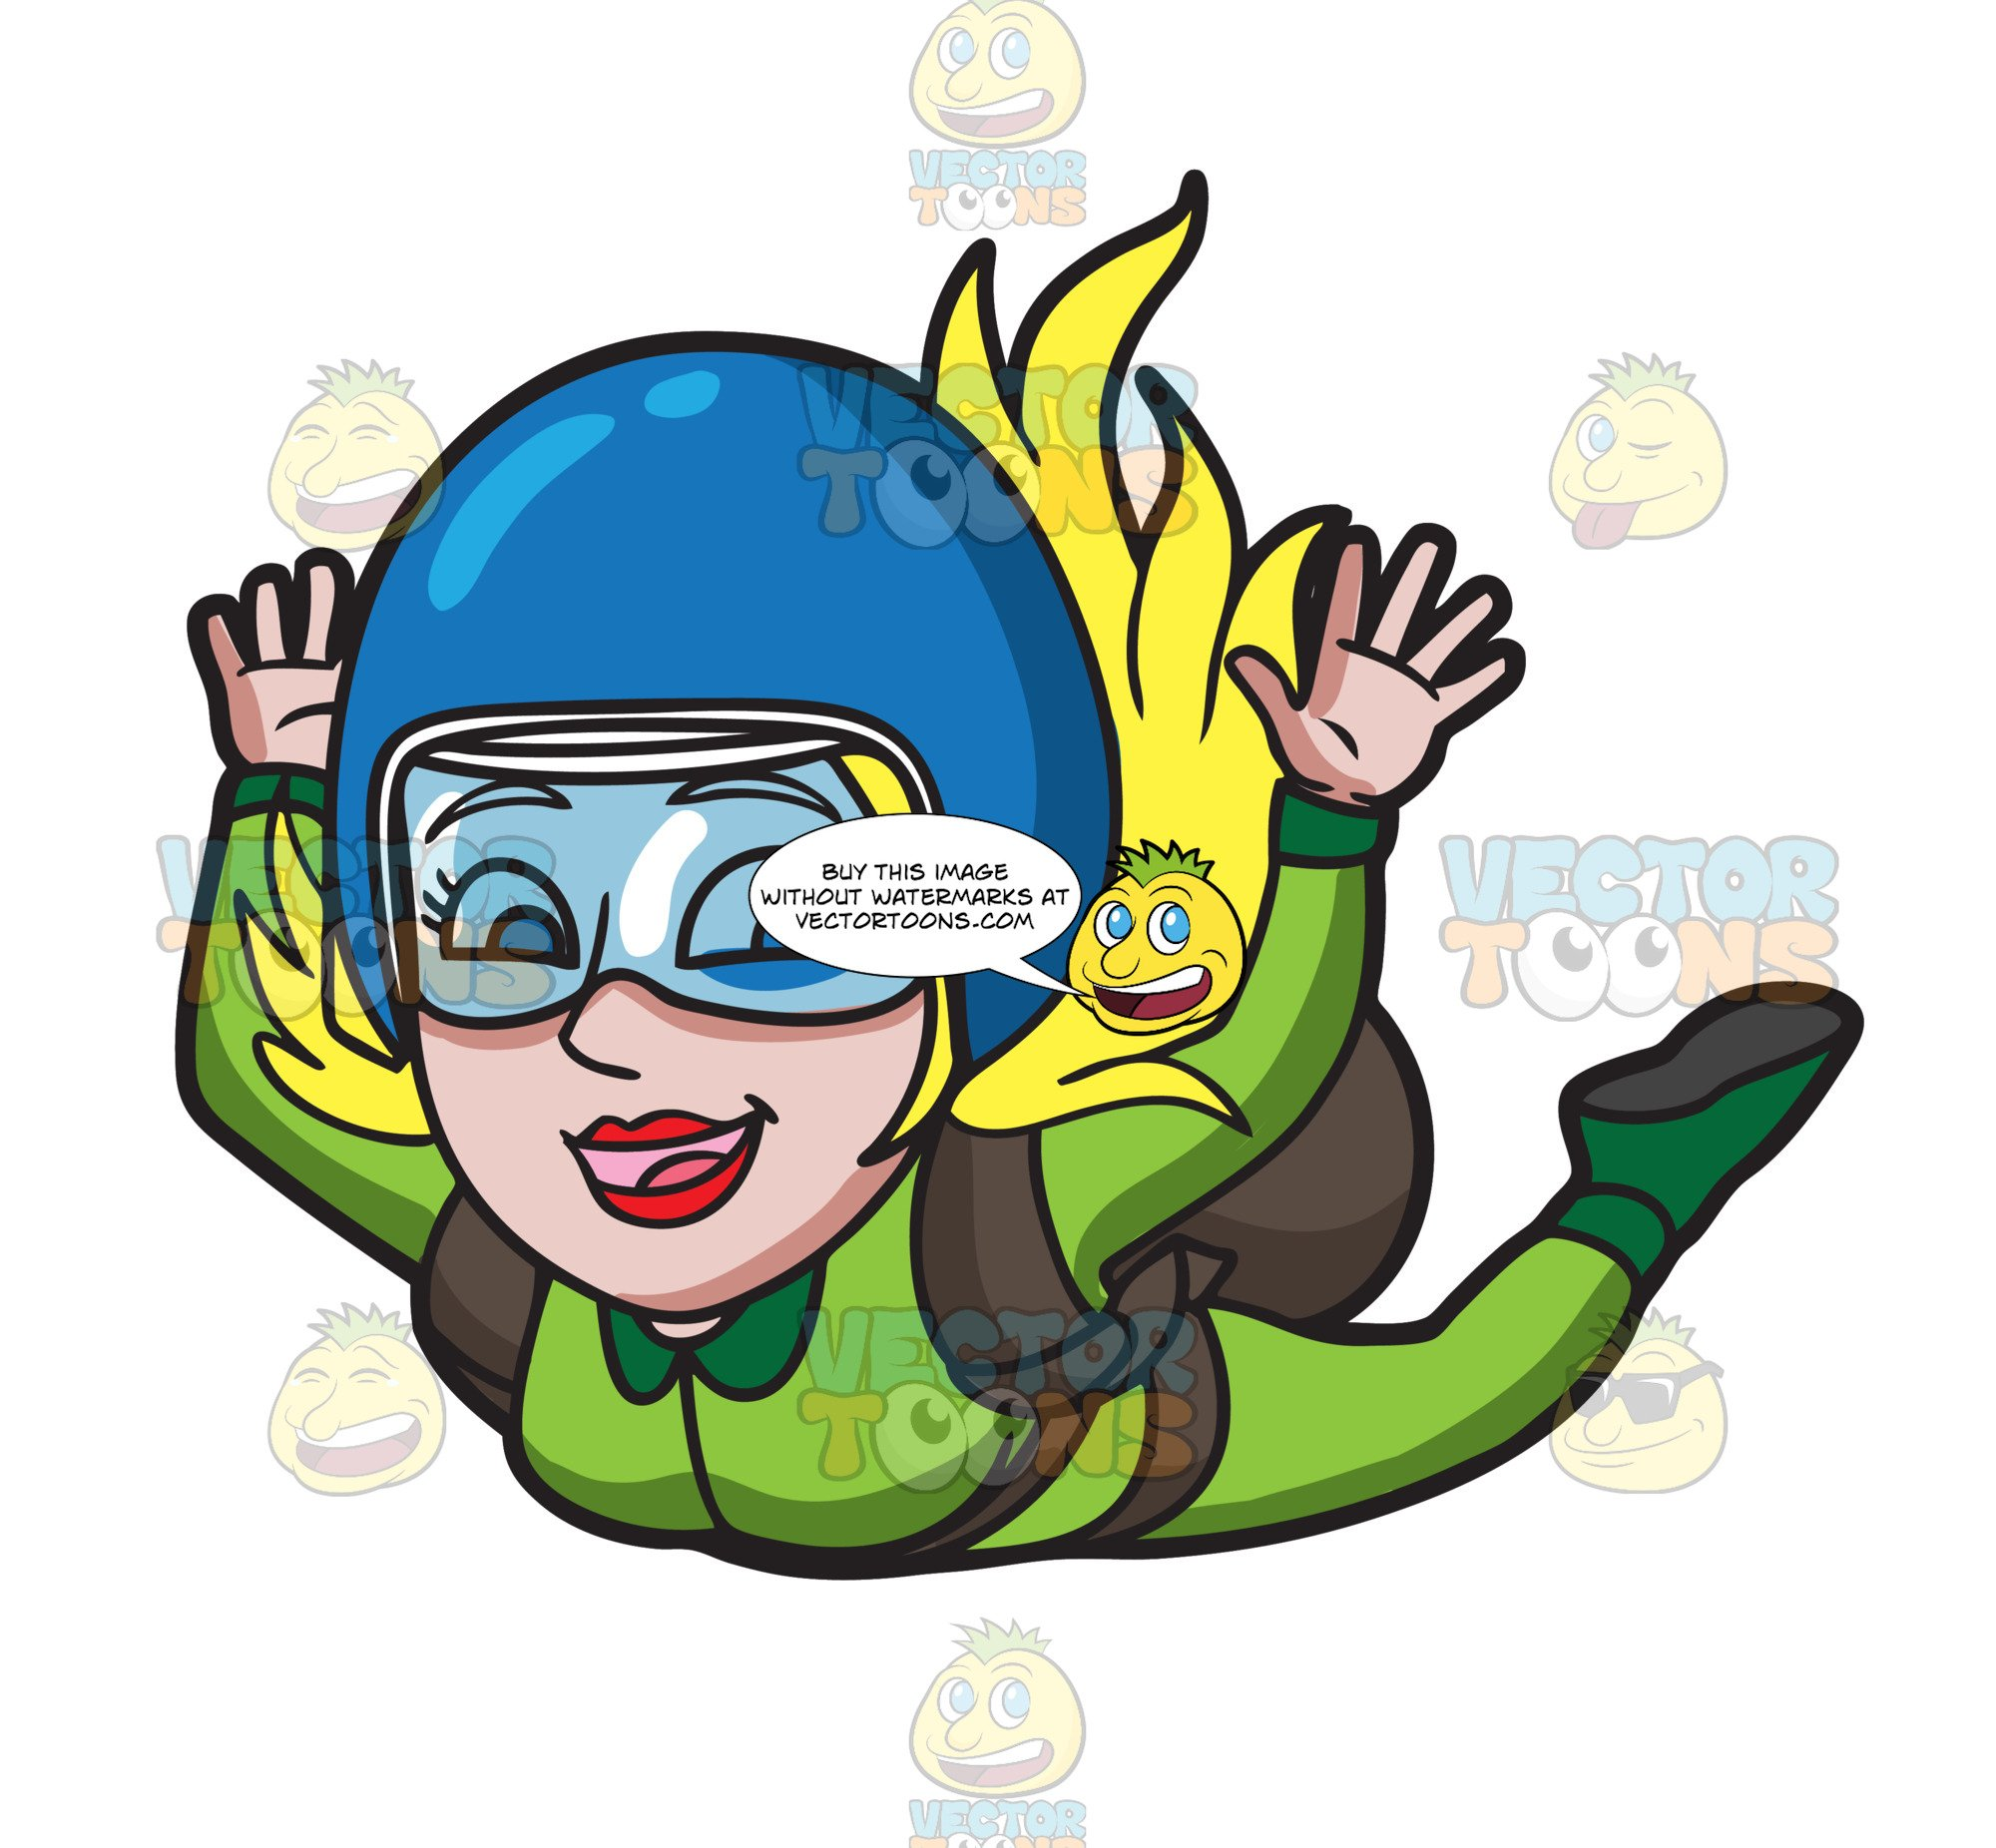 Skydiving cartoon clipart svg black and white library A Woman Enjoying Her Skydive svg black and white library